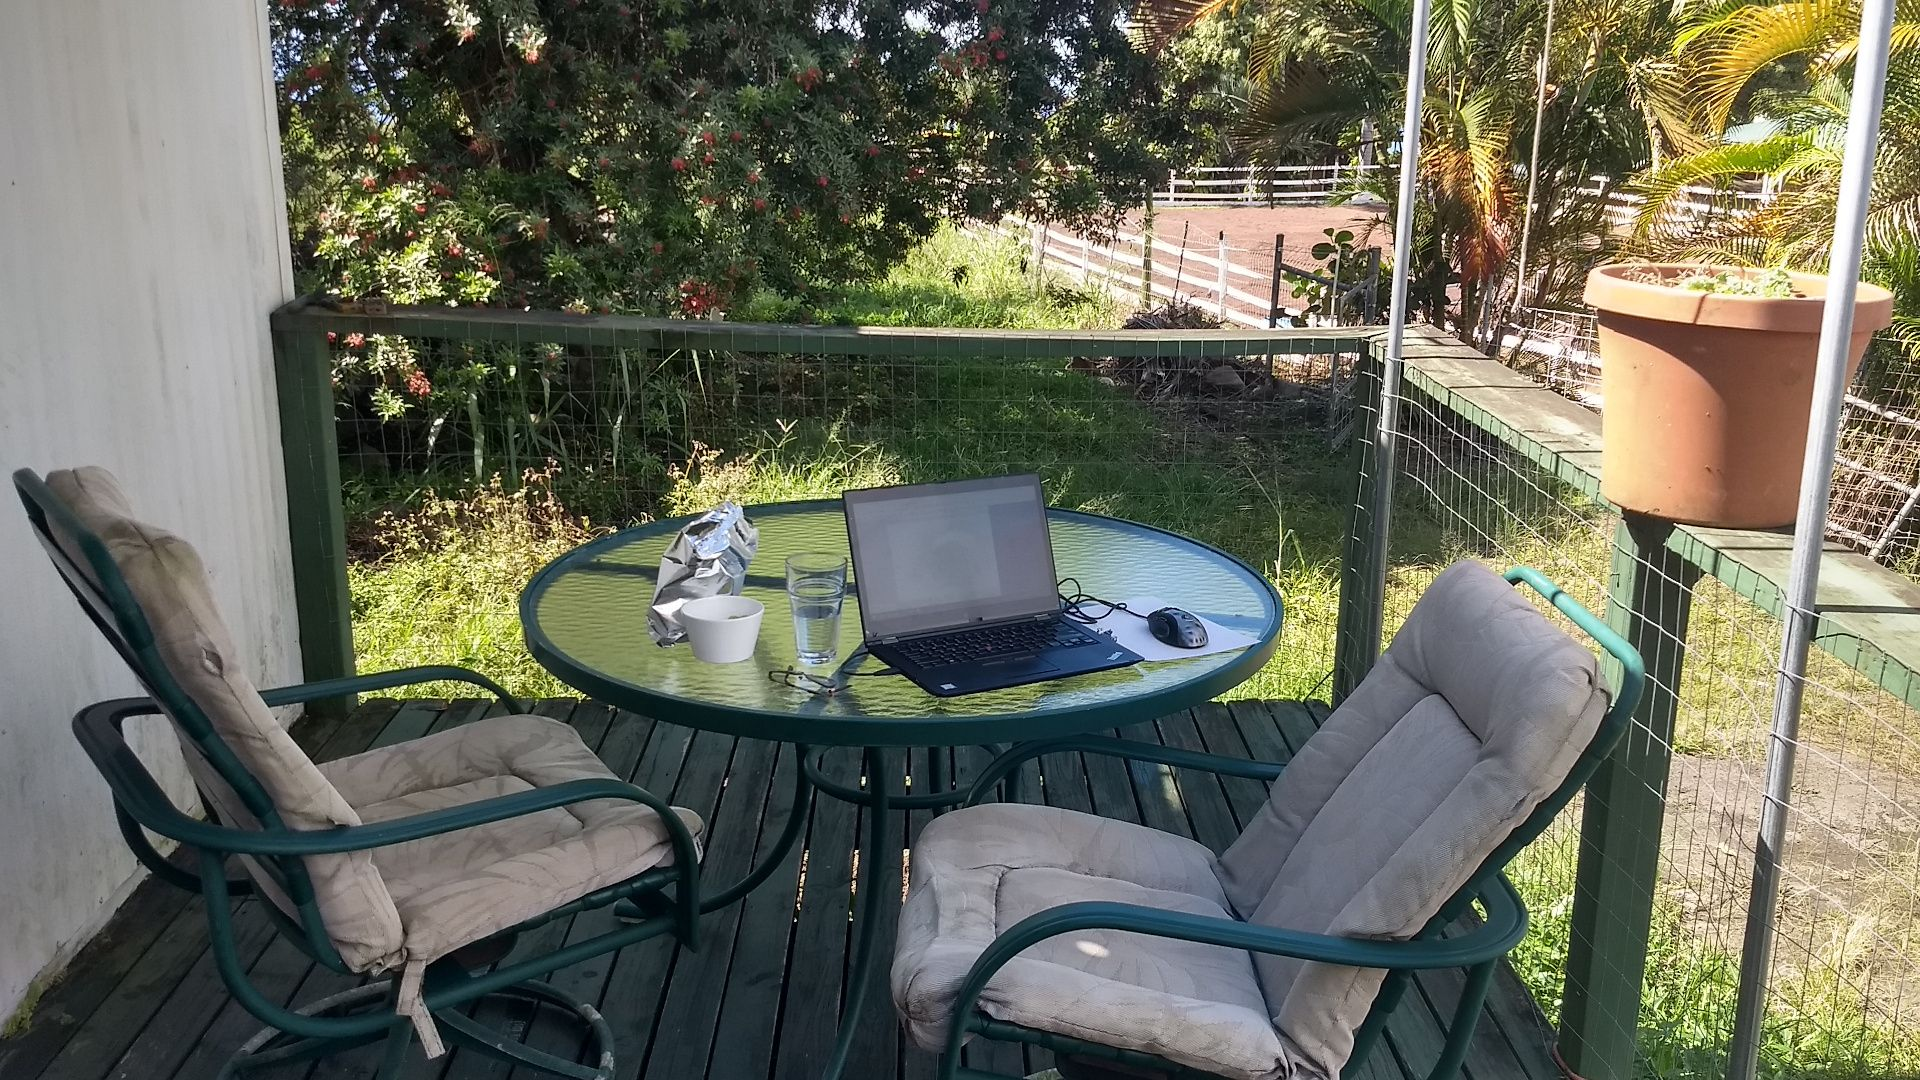 A laptop on a glass patio table.